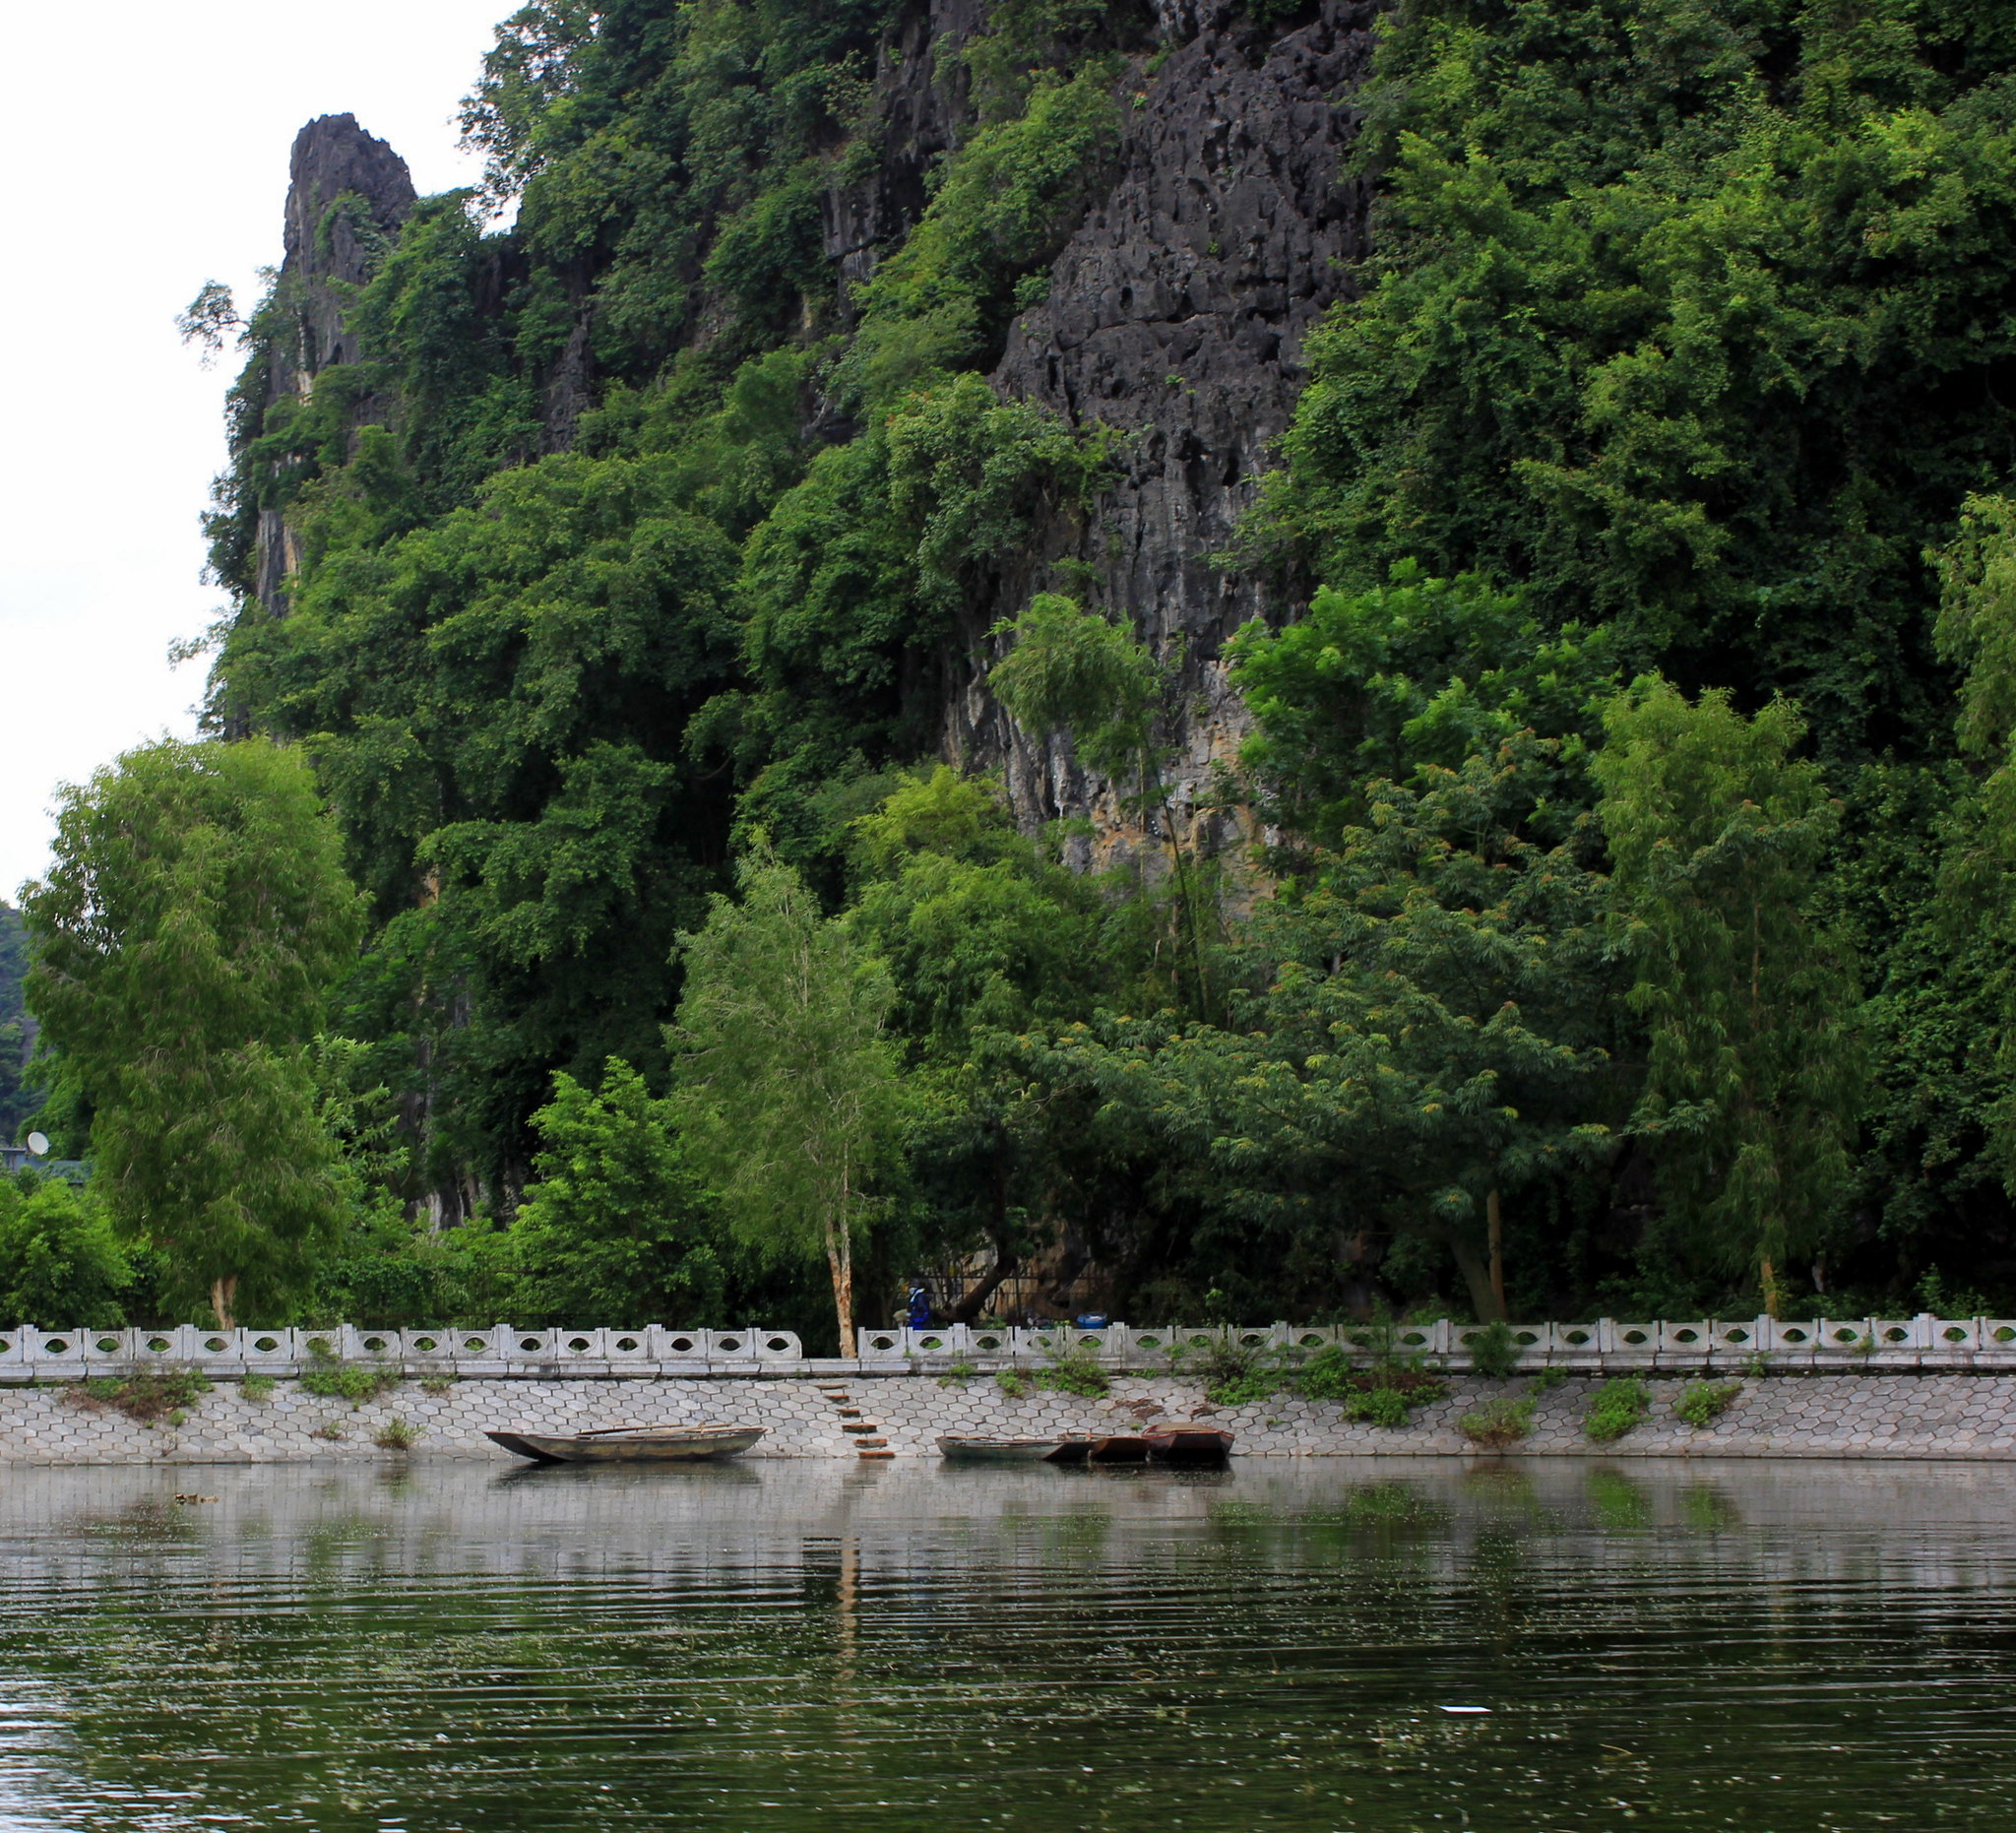 Limestone caves and grottos of Tam Coc